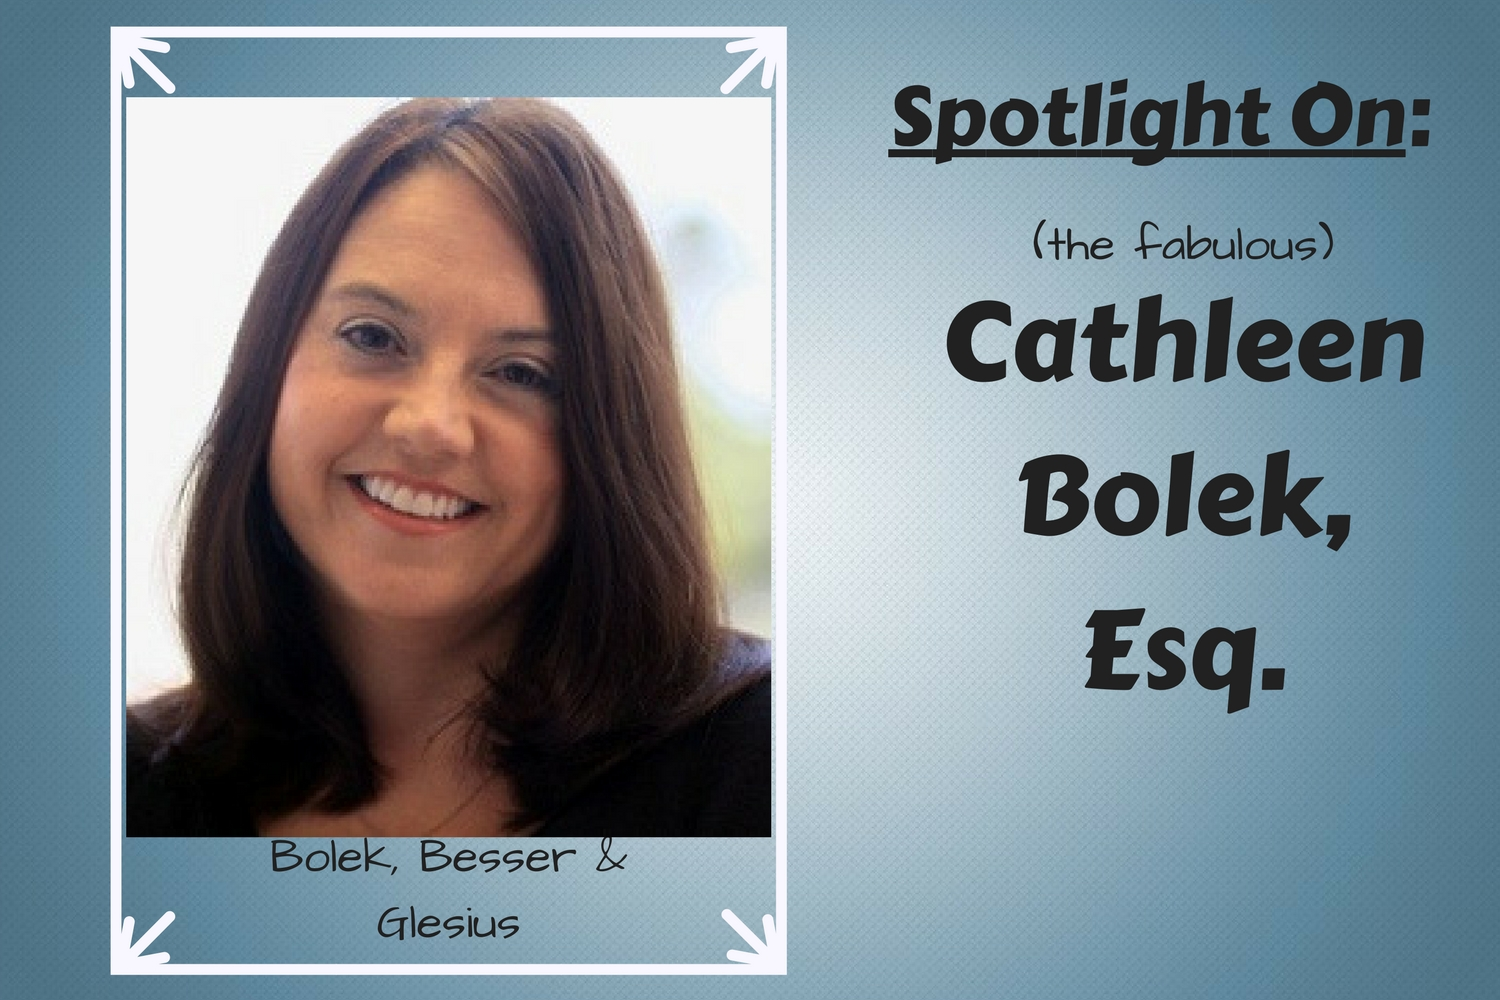 Spotlight On: Cathleen Bolek, Esq.